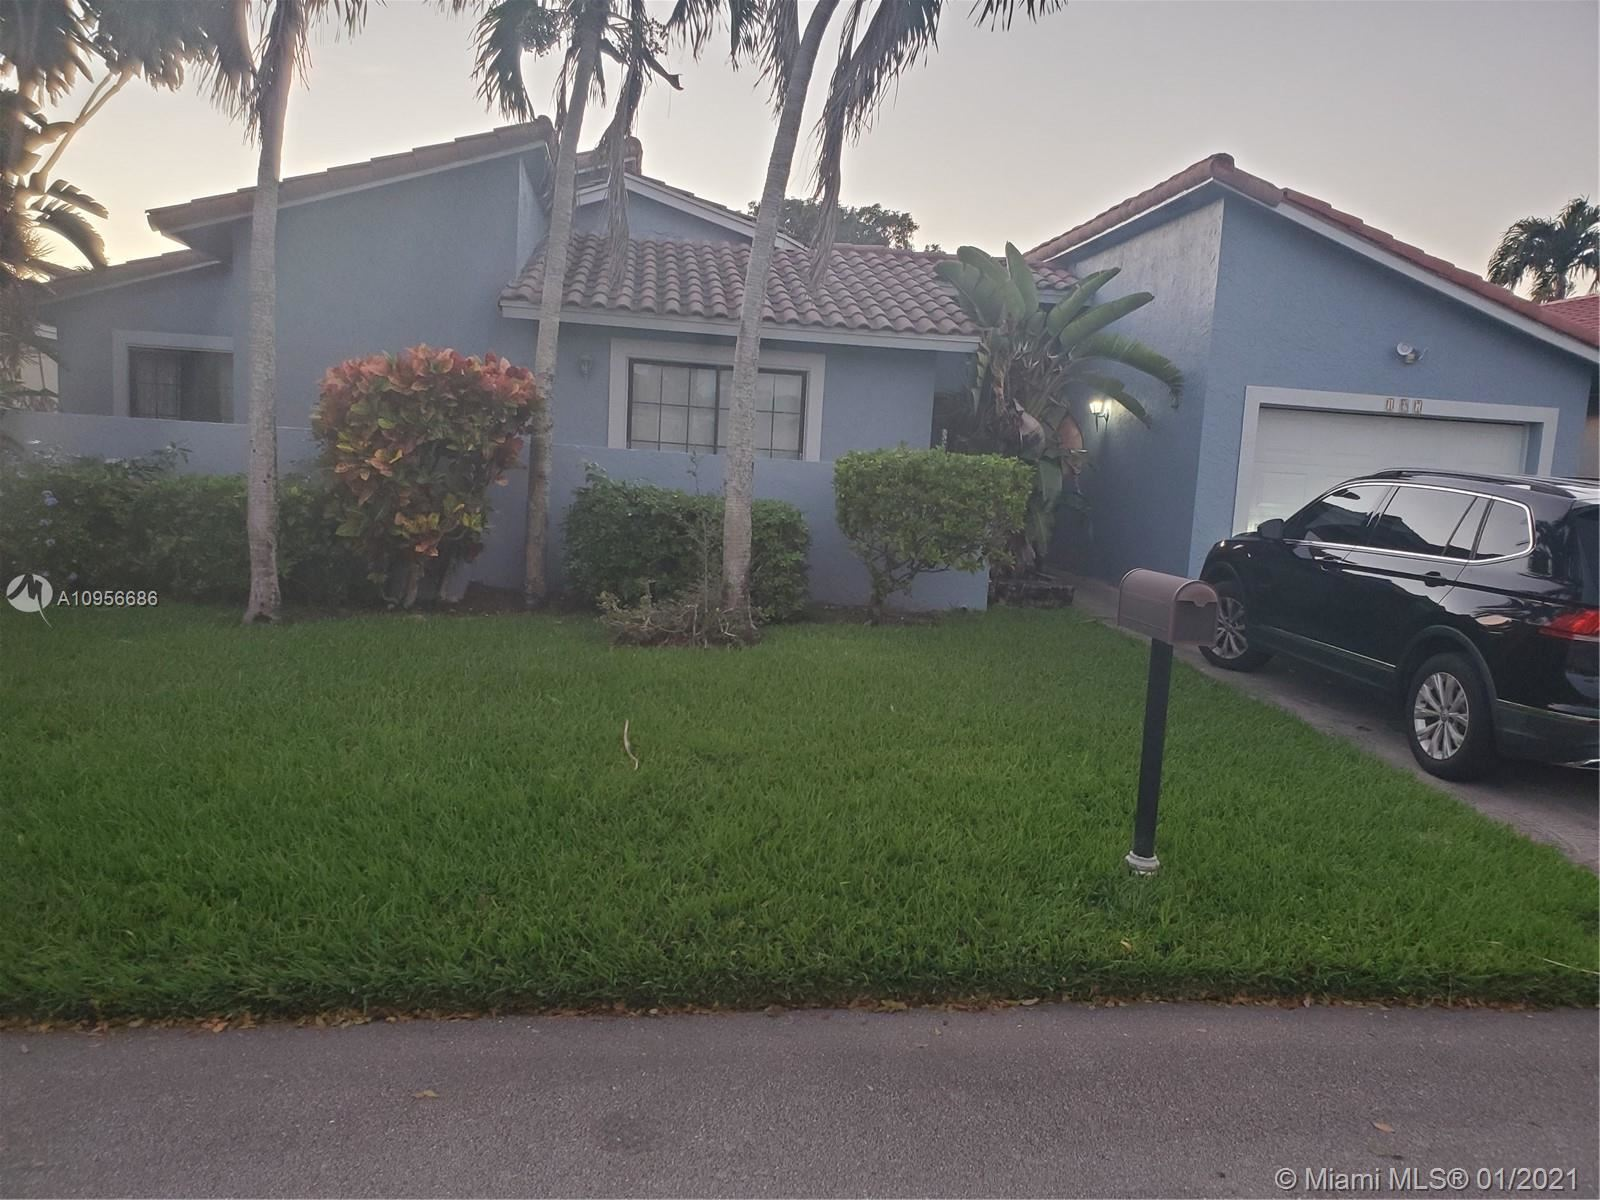 Photo of 197 NW 47th Ave, Deerfield Beach, FL 33442 (MLS # A10956686)